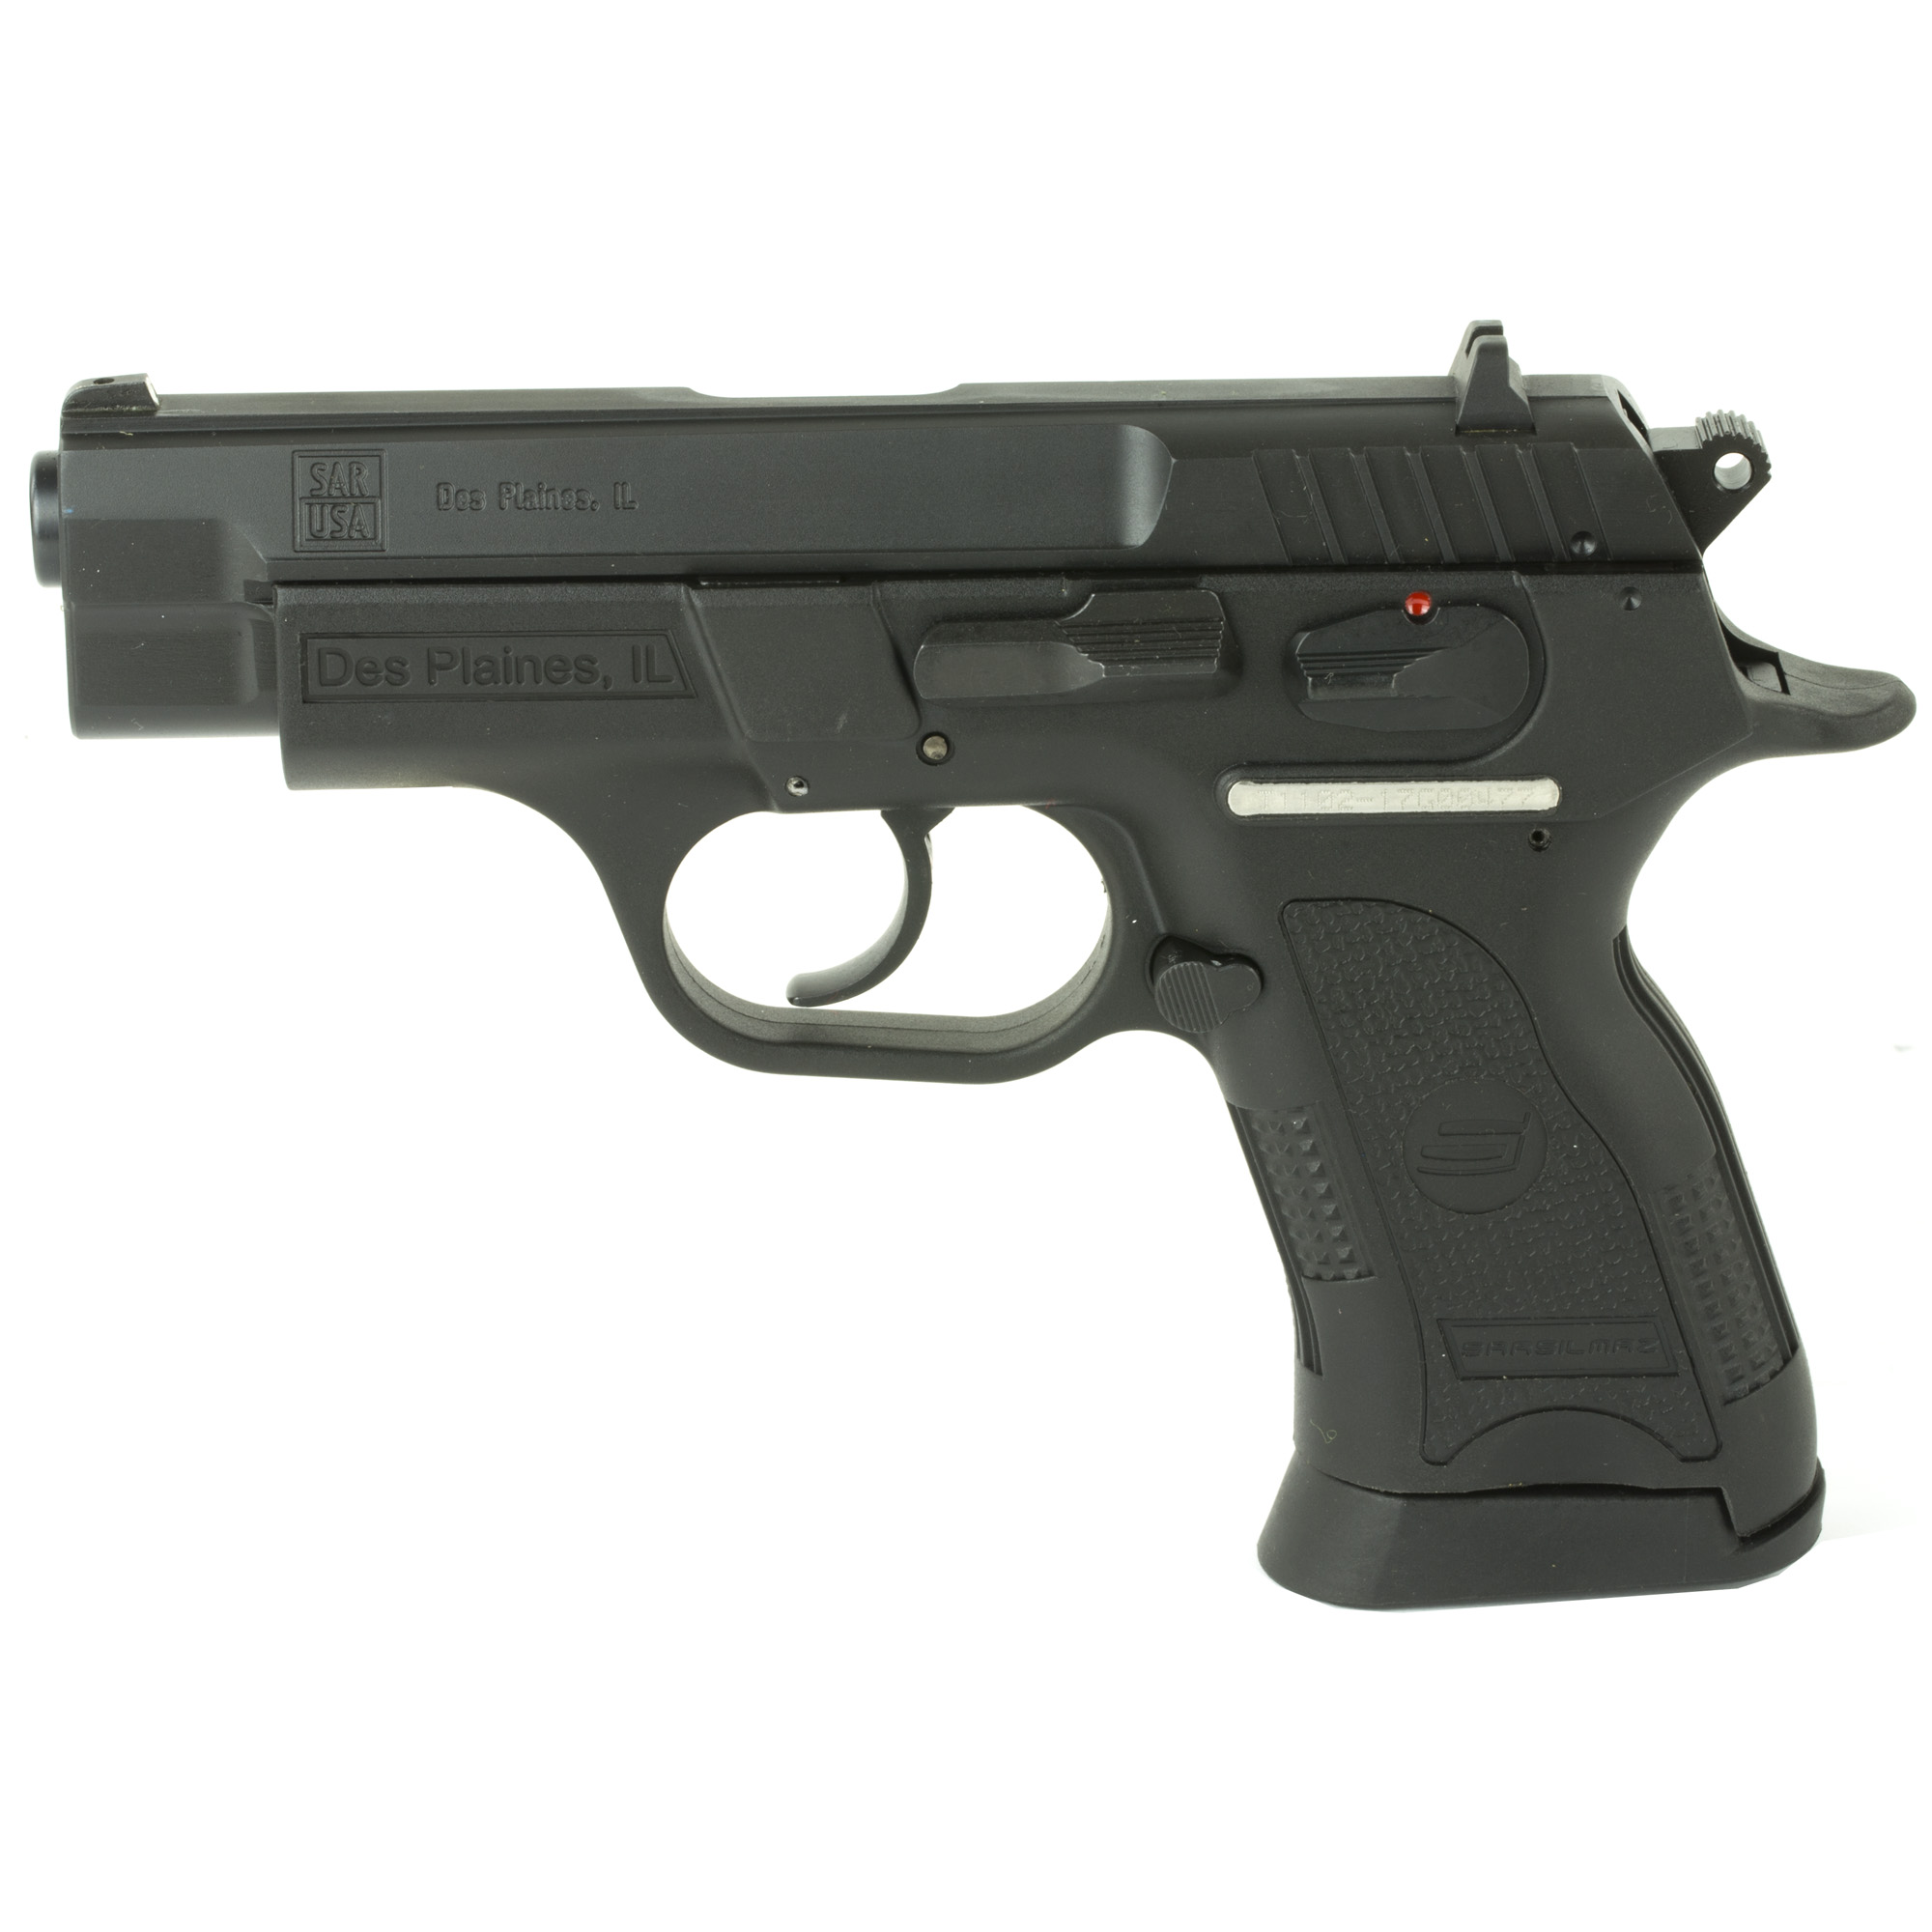 """The B6 series is truly the foundation of the SAR USA line of polymer frame pistols. Long a favorite of security and law enforcement Worldwide"""" the B6 is a no nonsense rock solid side arm of proven dependability. With an integrated grip spur and three back strap inserts to customize the ergonomic fit for the individual's hand"""" the B6 is quick pointing and comfortable. So"""" whether you're looking for a 9mm for home protection or a compact carry gun there's a value priced B6 to fit the bill."""